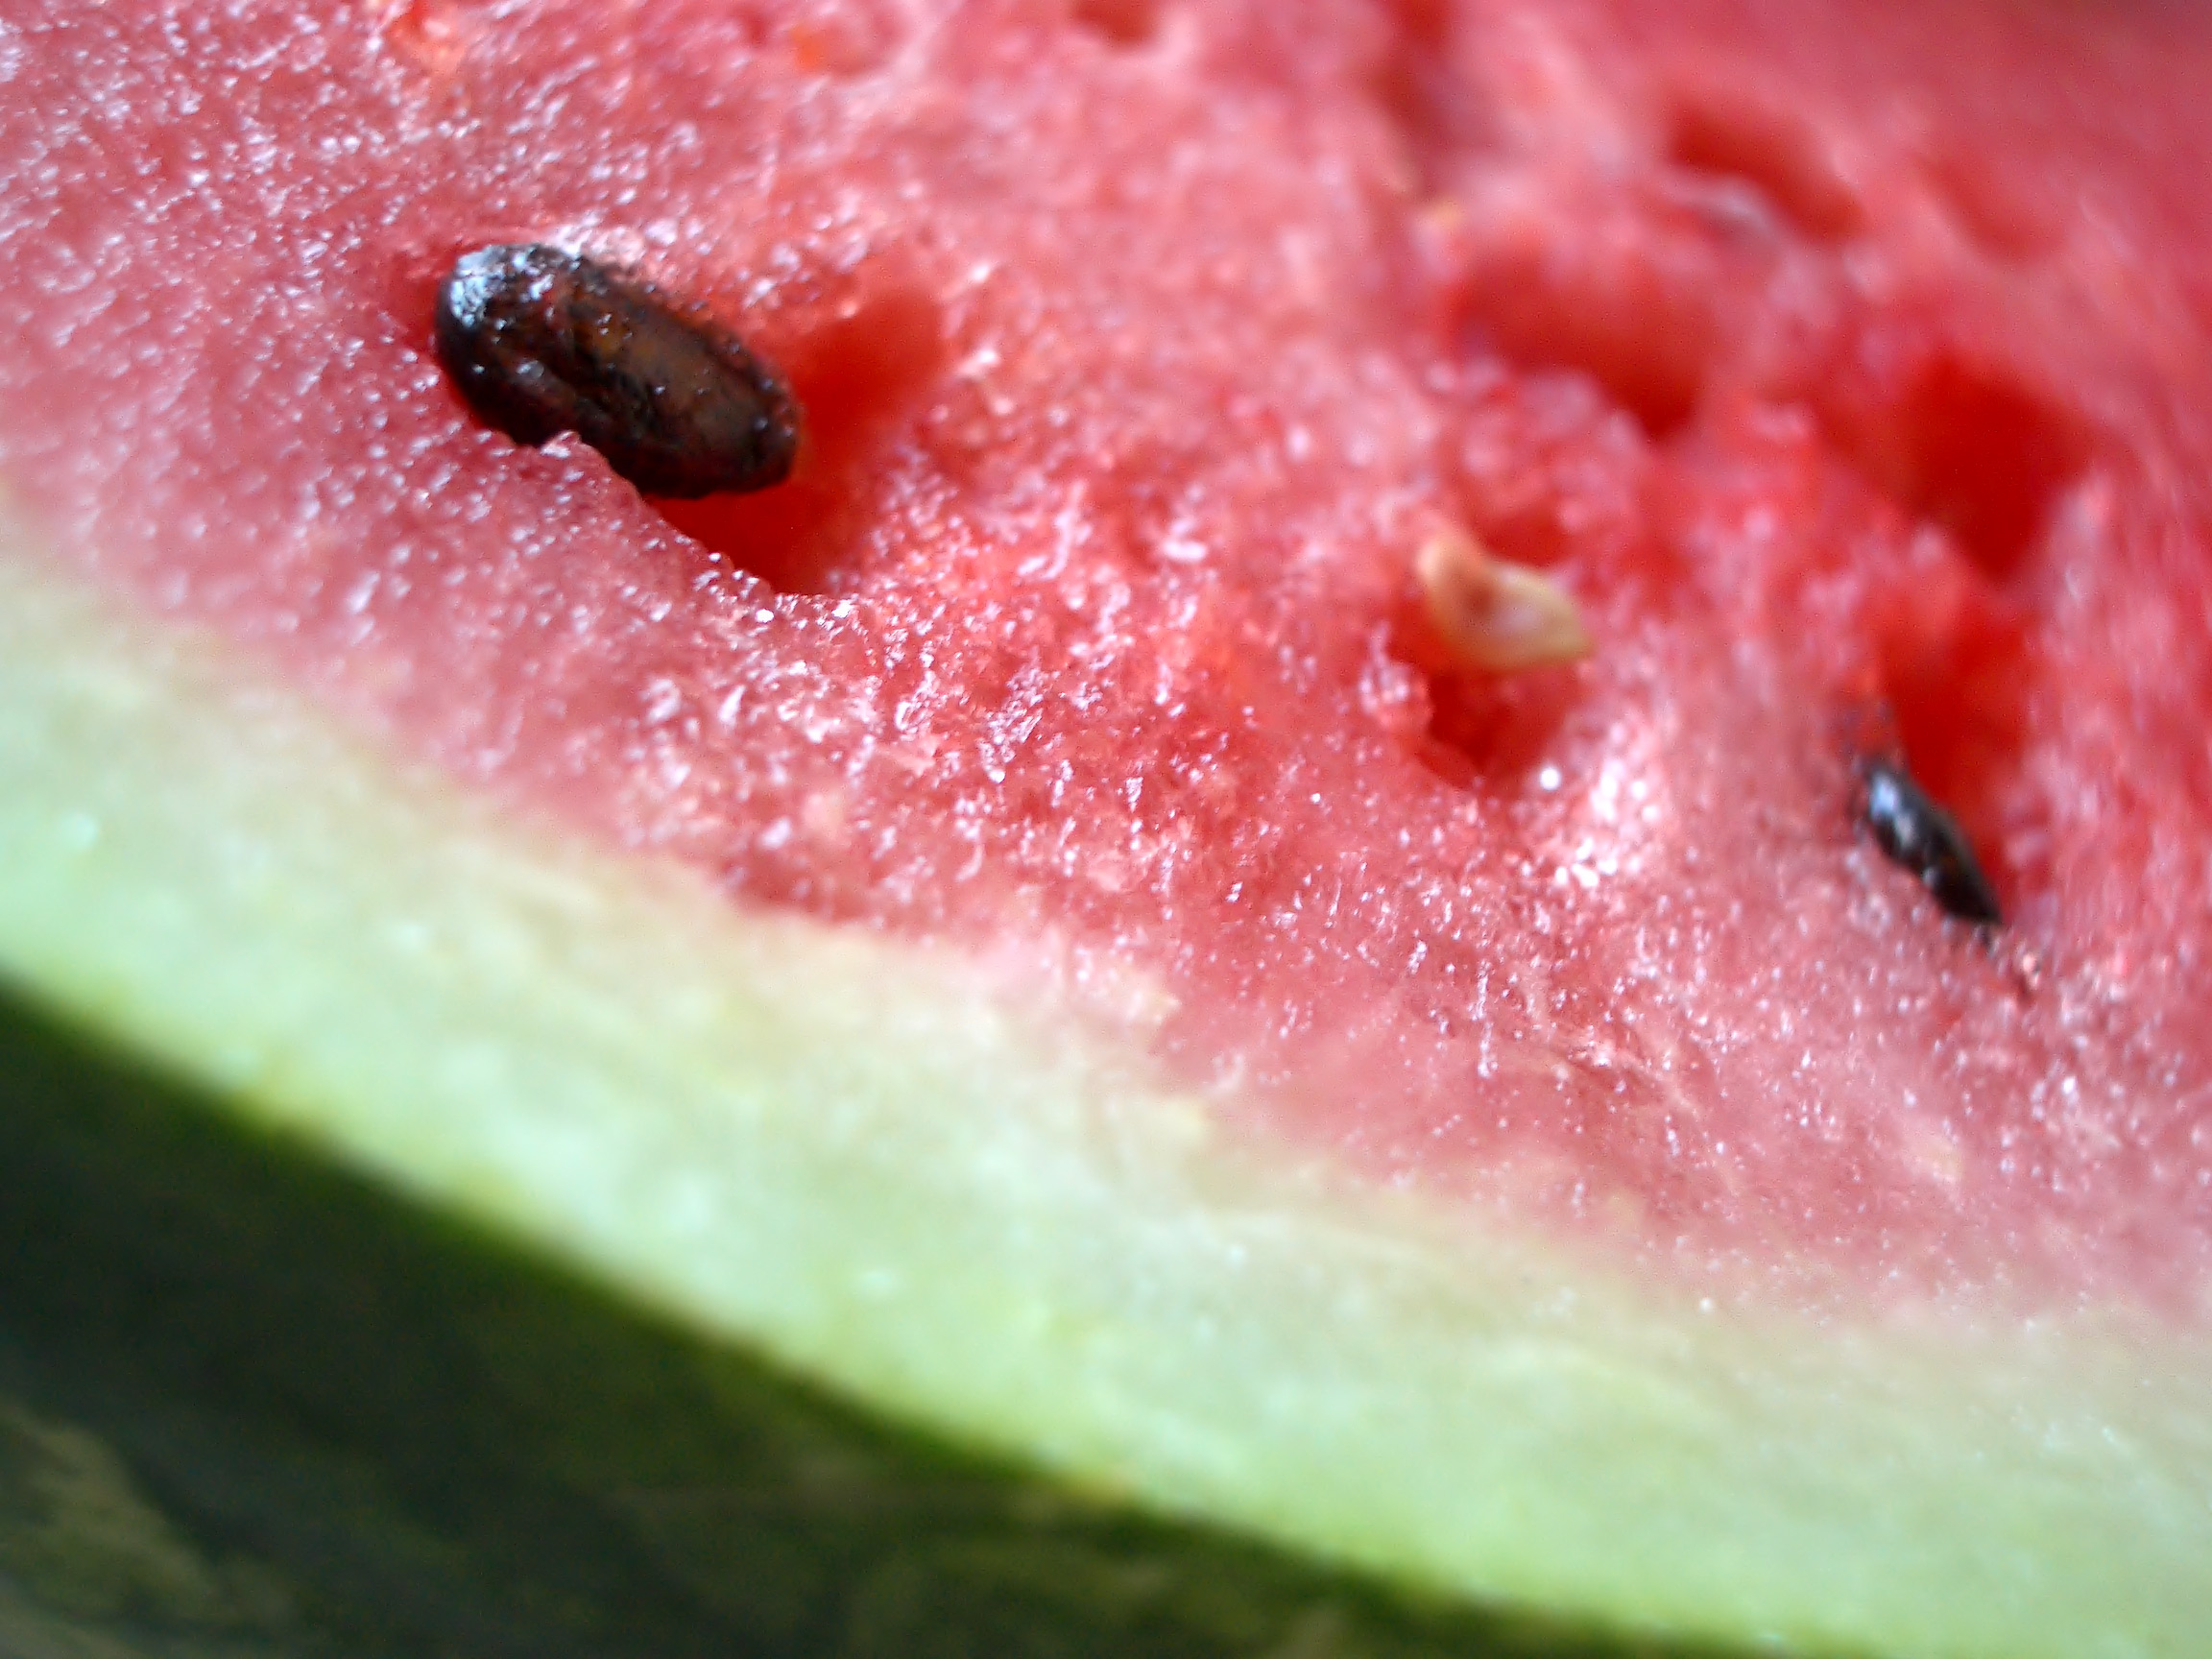 halved watermelon